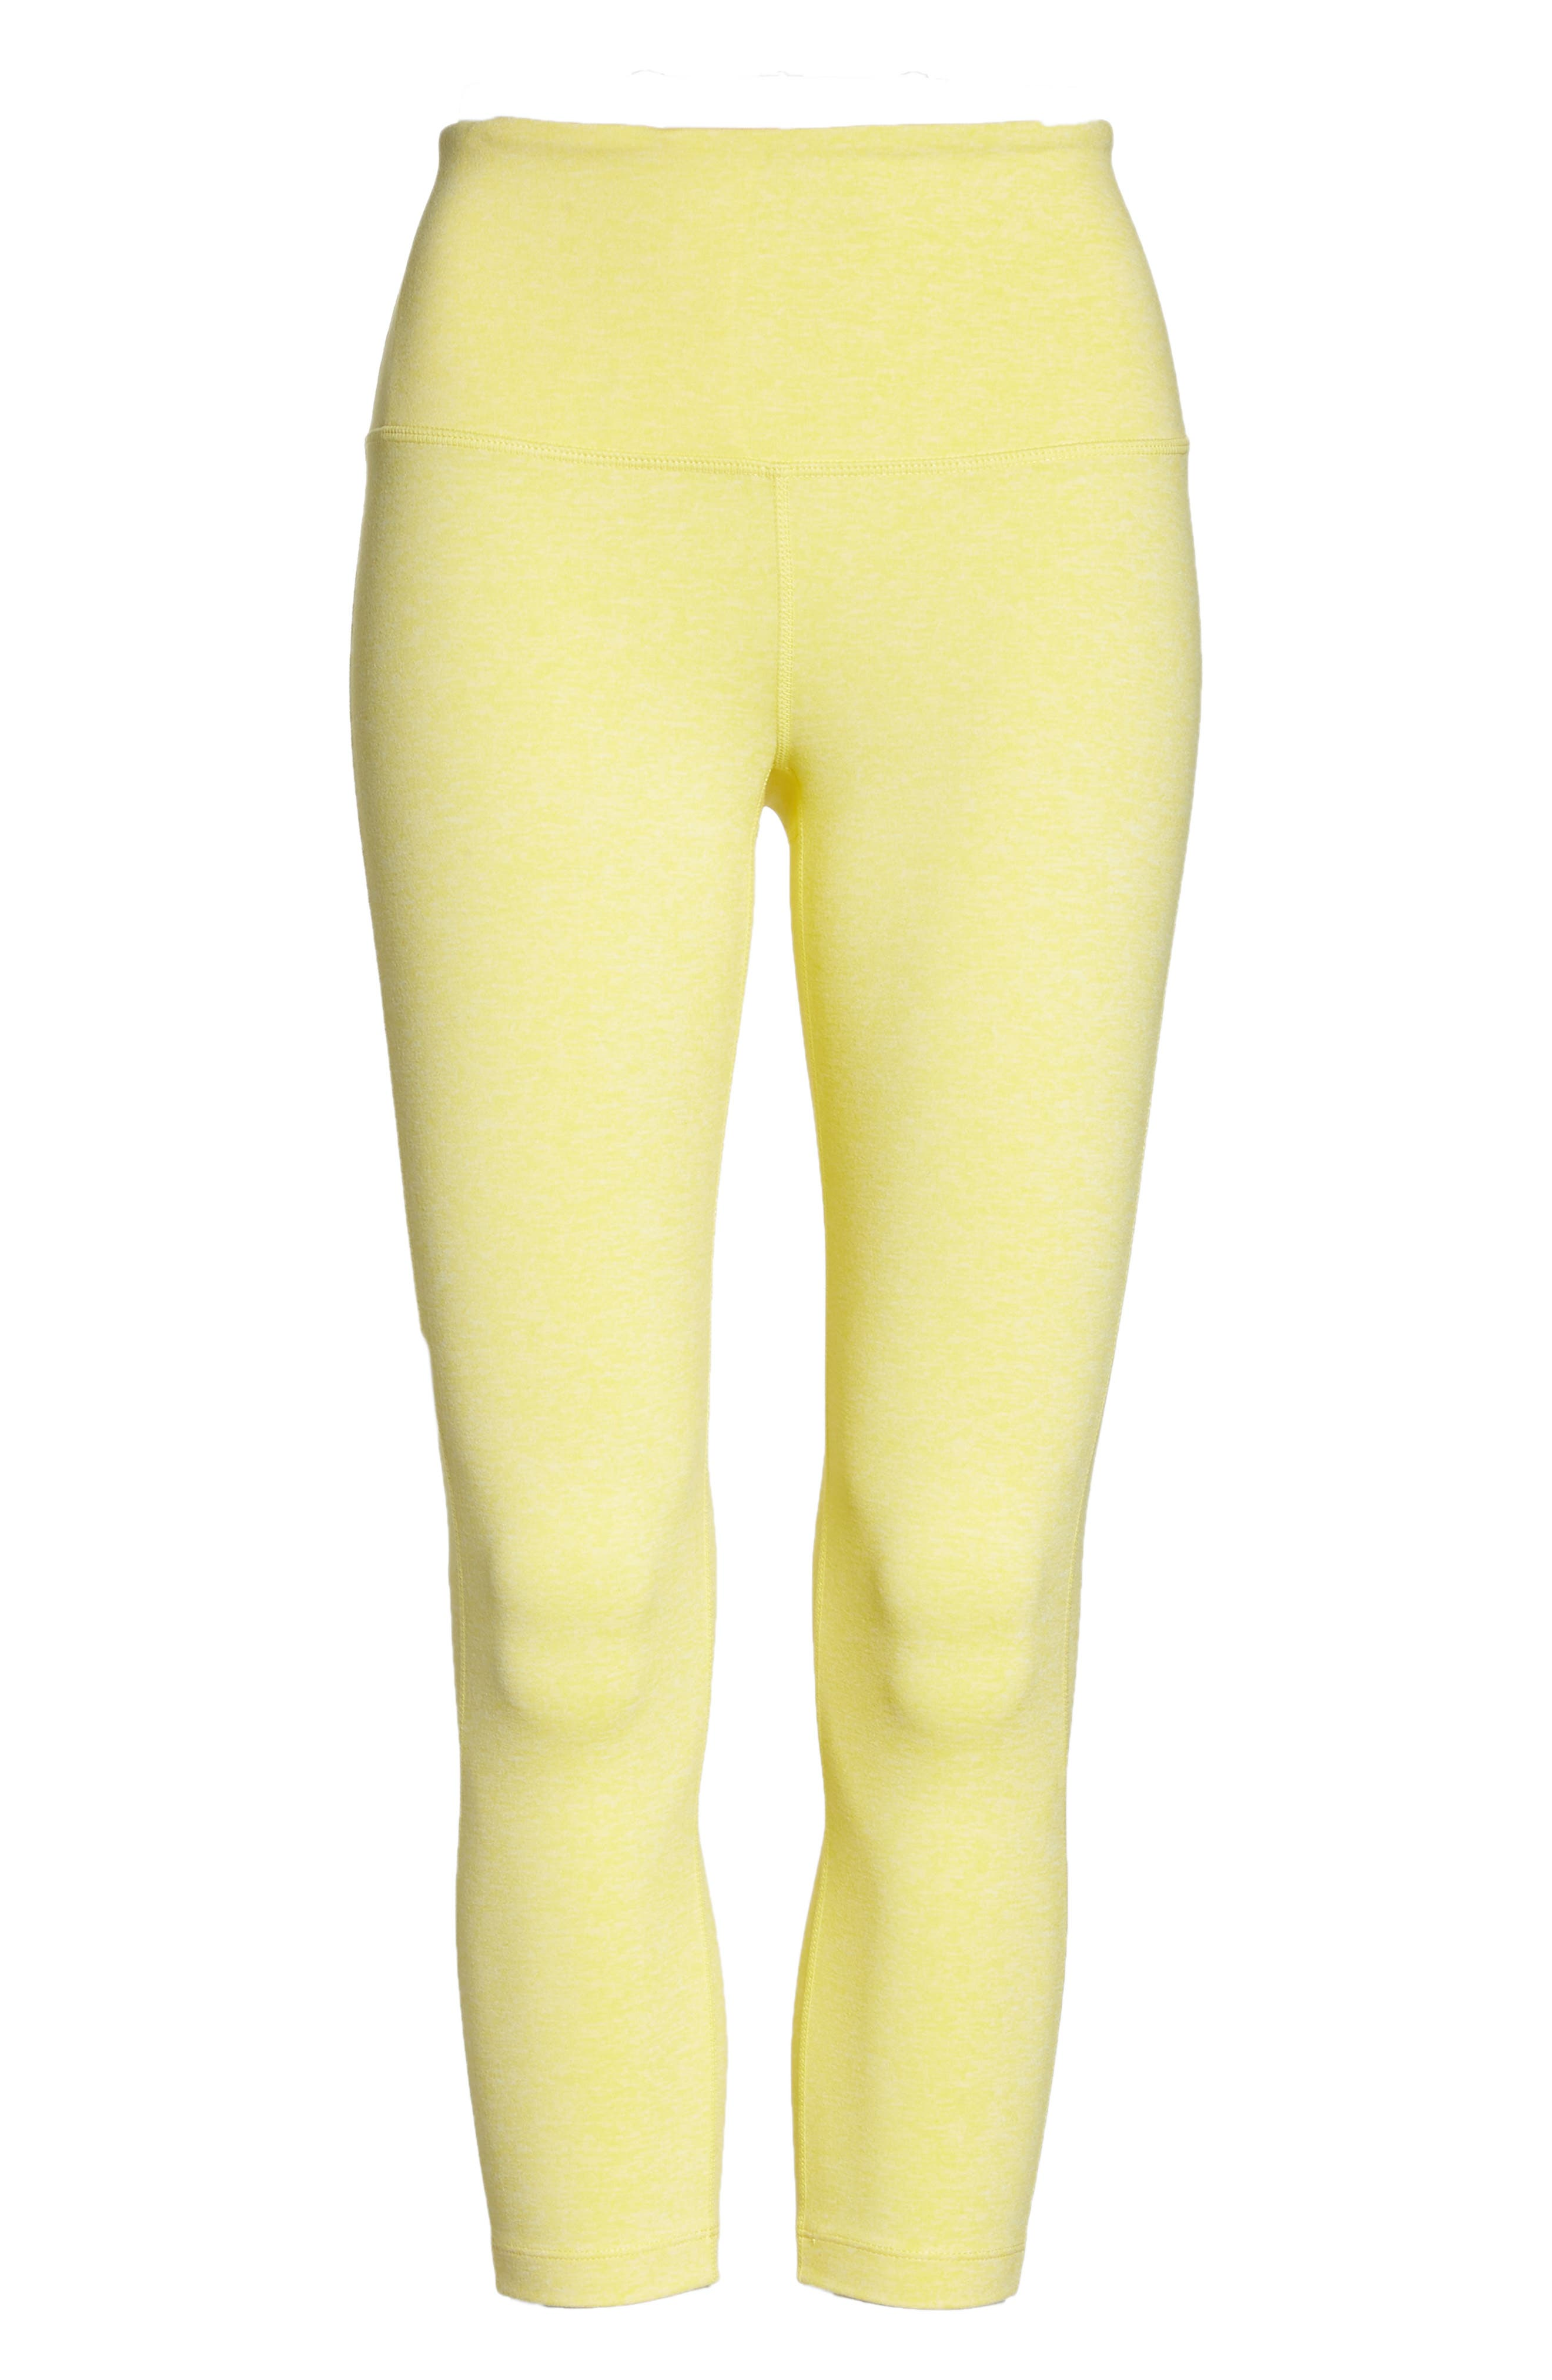 Live In High Waist Crop Recycled Leggings,                             Alternate thumbnail 7, color,                             YELLOW GLOW